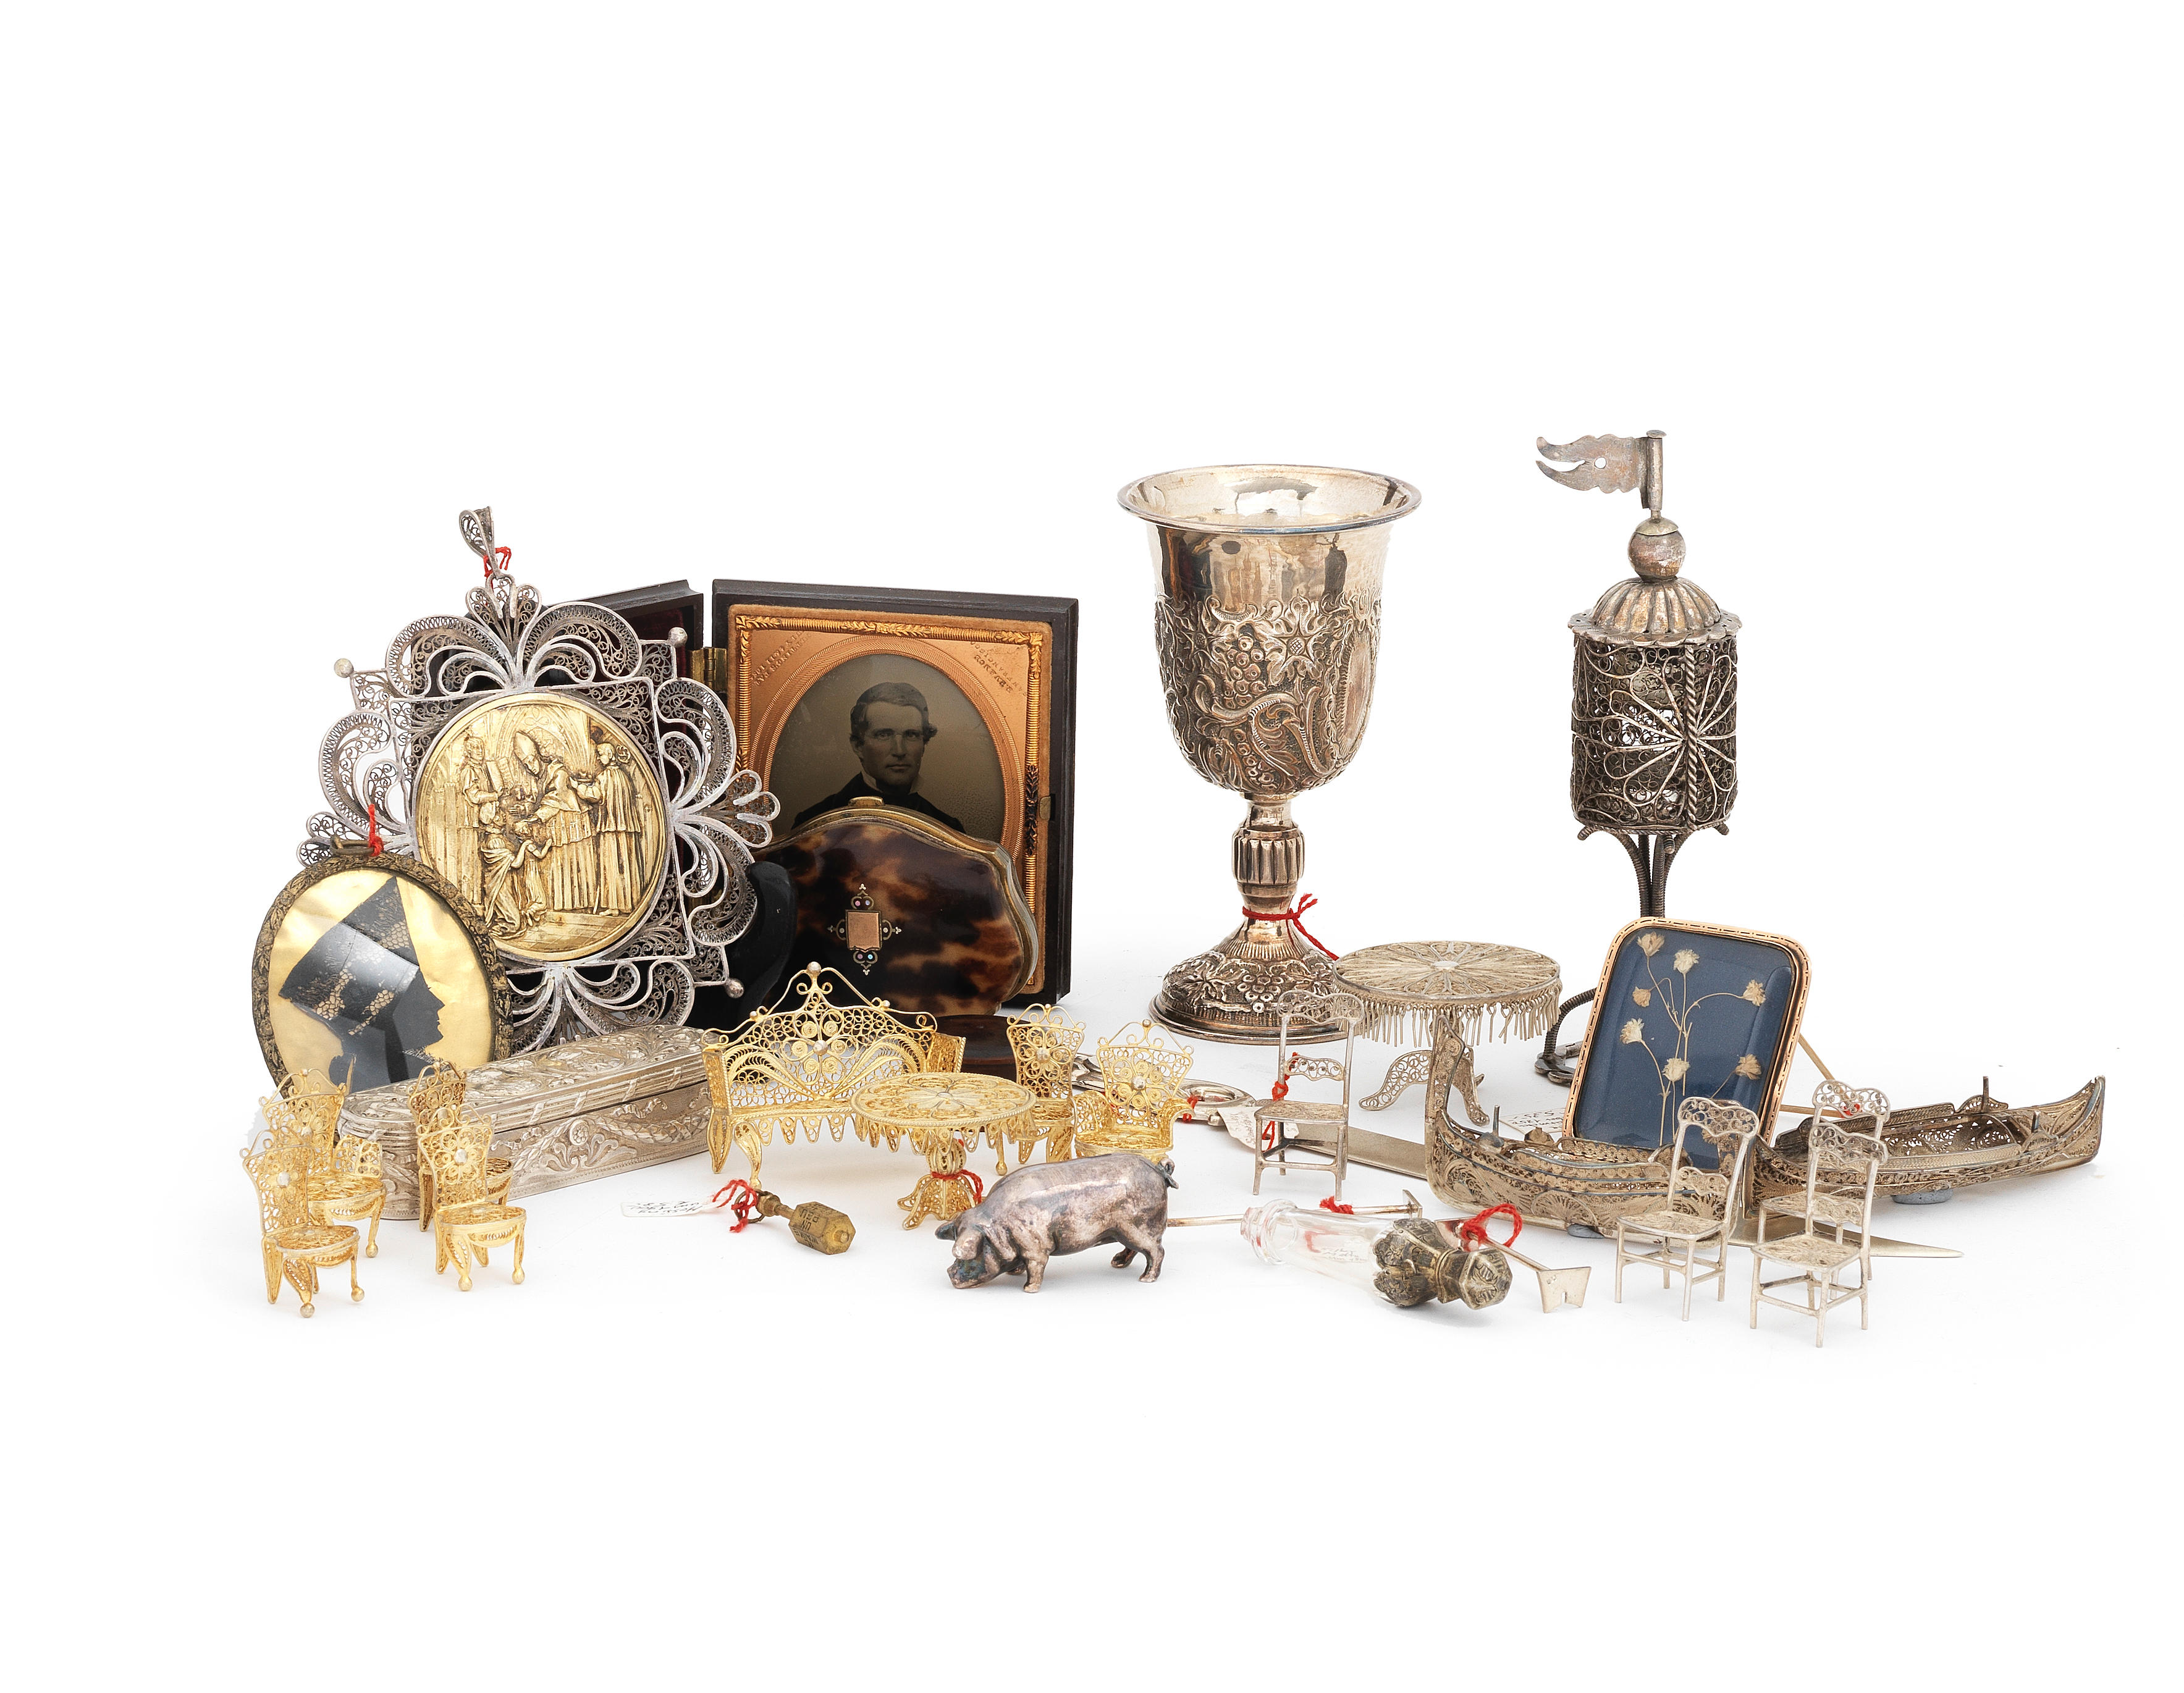 A collection of silver items and bijouterie